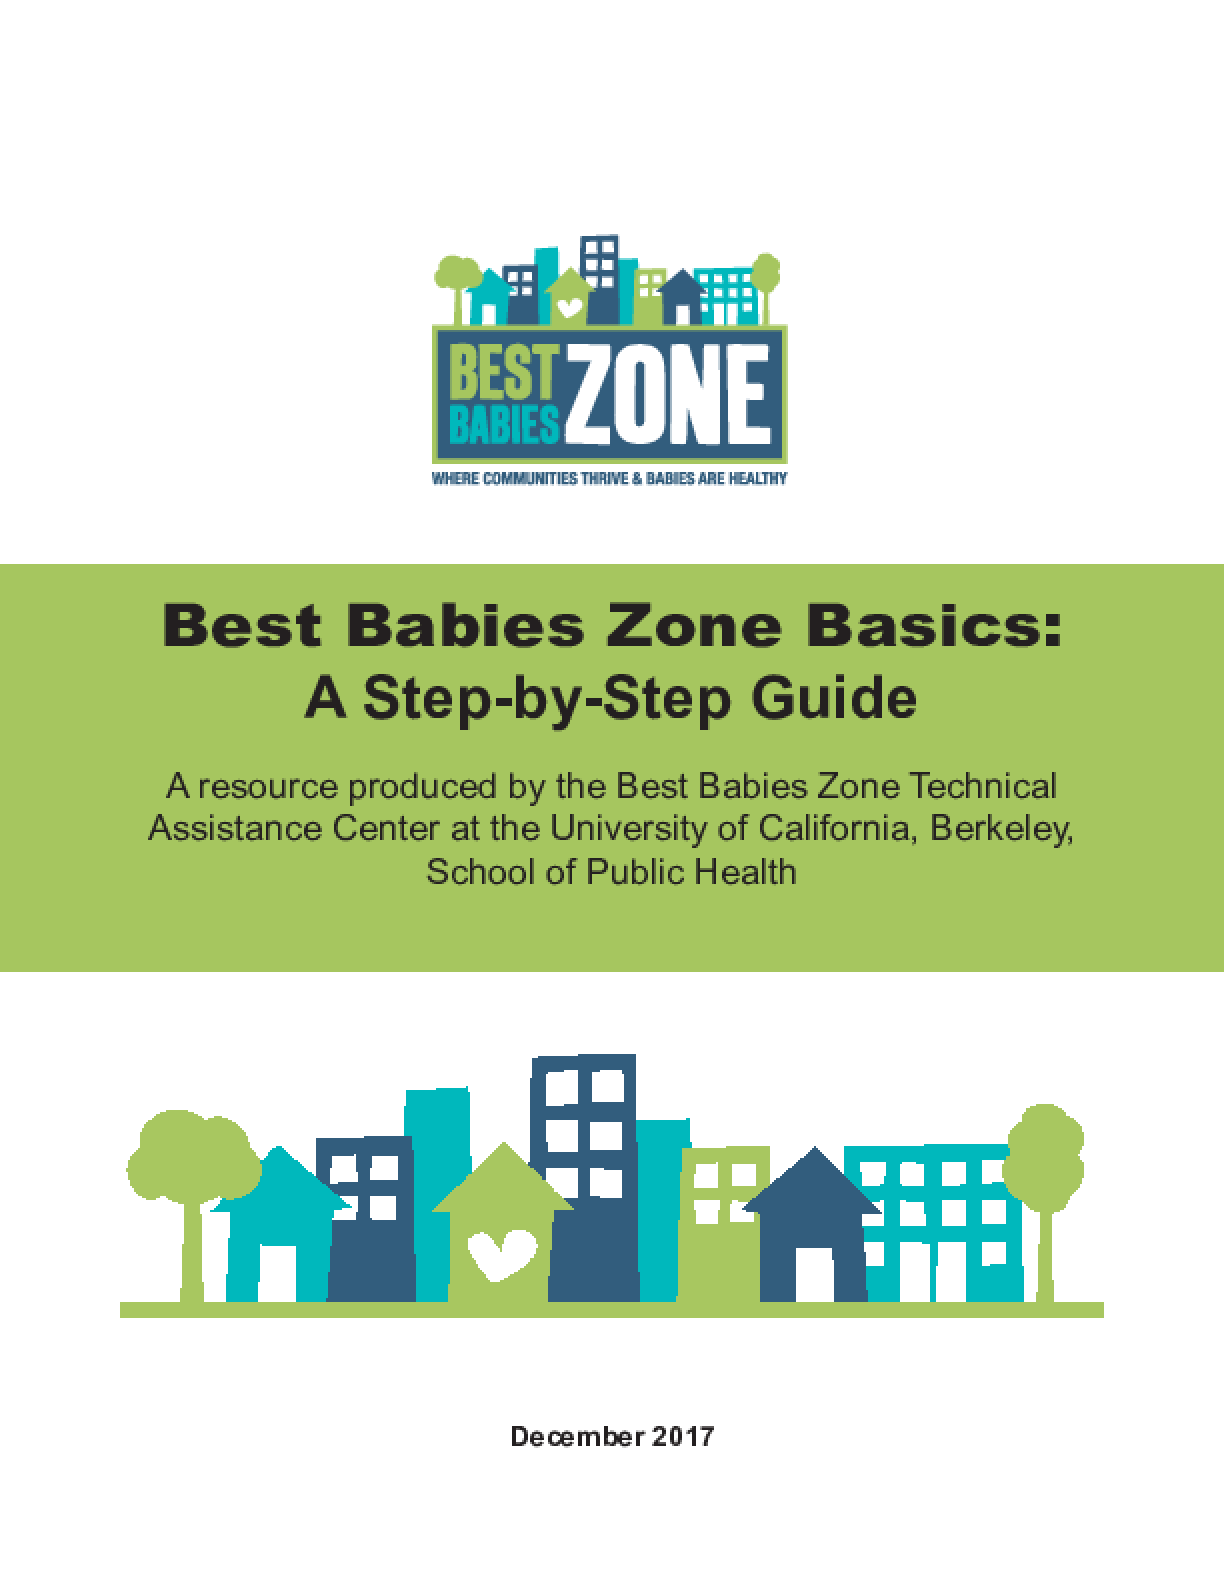 Best Babies Zone Basics: A Step-by-Step Guide